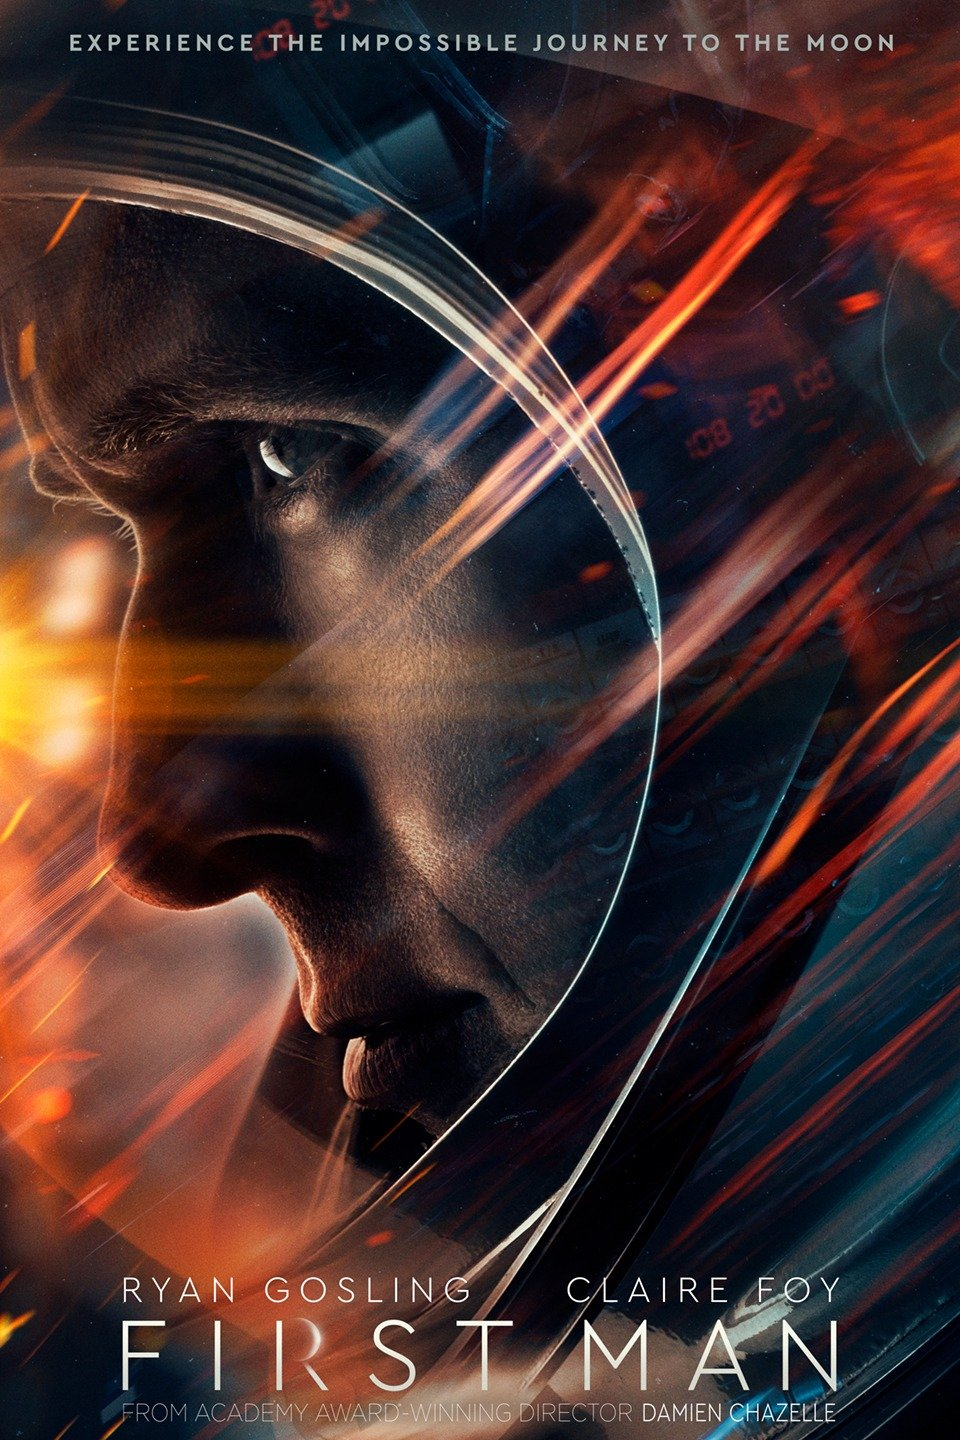 First Man (2018) - Directed by: Damien ChazelleStarring: Ryan Gosling, Claire Foy, Jason Clarke, Pablo Schreiber, Kyle Chandler, Corey Stoll, Christopher Abbot, Ciaran Hinds, Olivia Hamilton, Shea Whigham, Patrick FugitRated: PG-13 for Some Thematic Content Involving Peril, and Brief Strong LanguageRunning Time: 2 h 21 mTMM Score: 5 stars out of 5STRENGTHS: Writing, Directing, Acting, Story, ThemesWEAKNESSES: Cinematography (?)